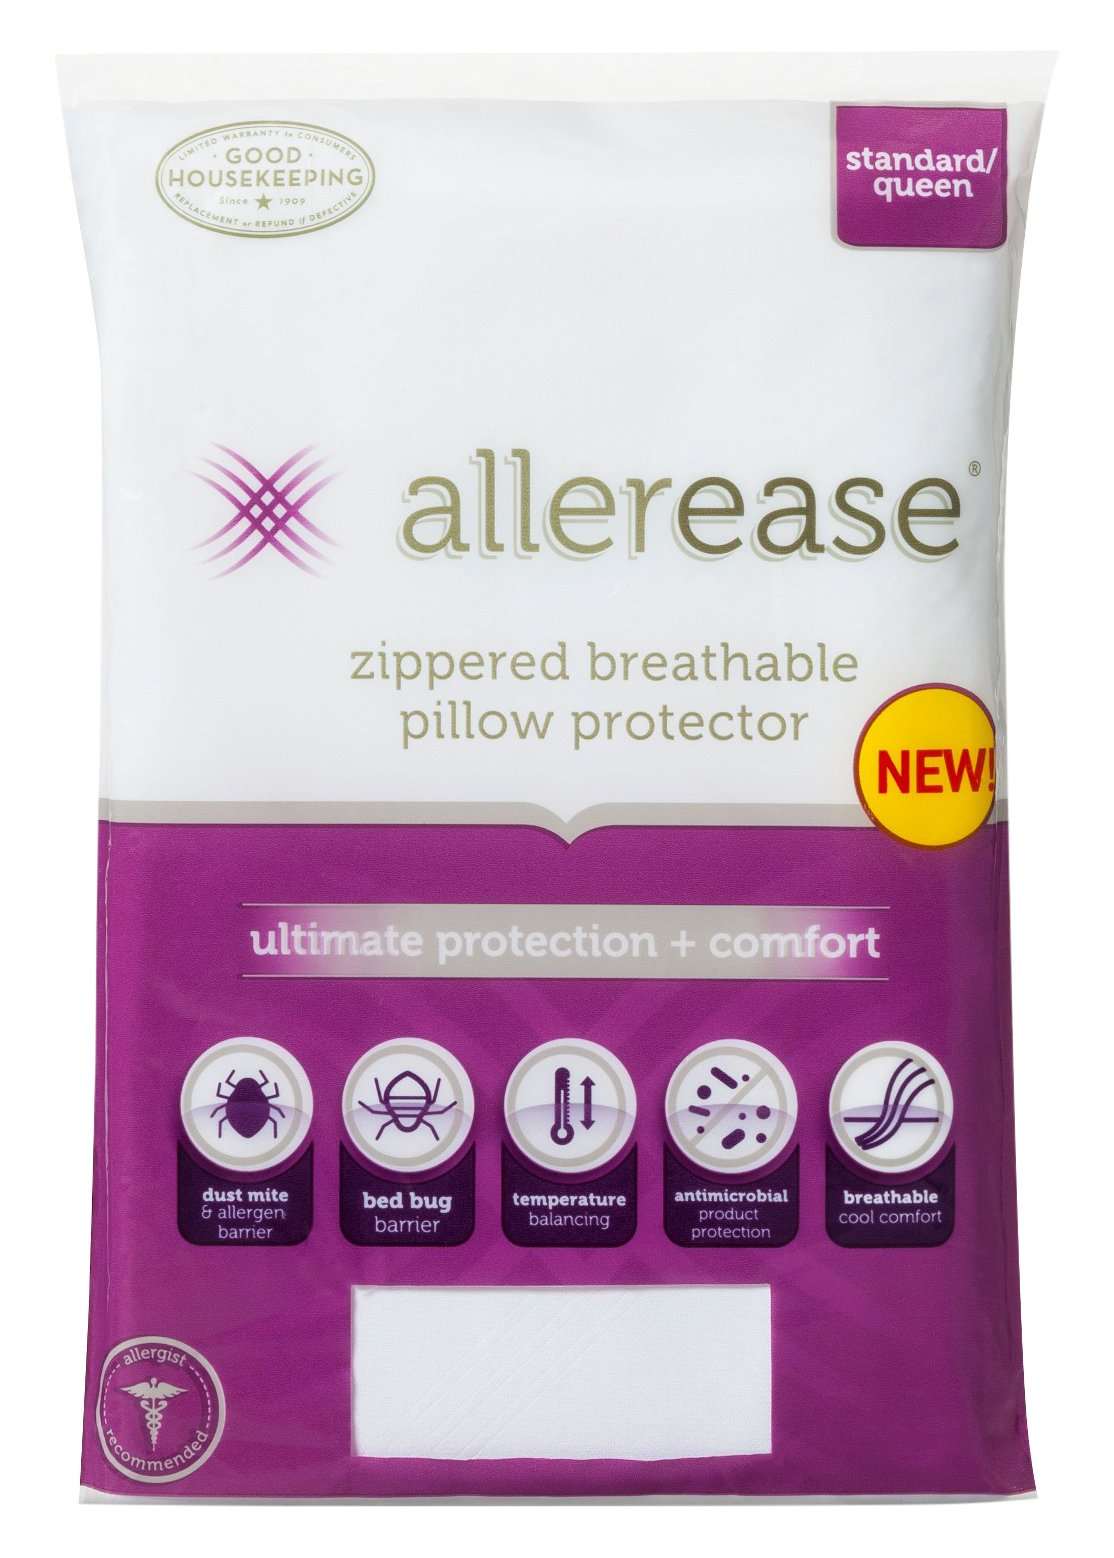 AllerEase Ultimate Protection & Comfort Temperature Balancing Pillow Protector – Zippered, Allergist Recommended, Prevent Collection of Dust Mites and Other Allergens, Standard/Queen